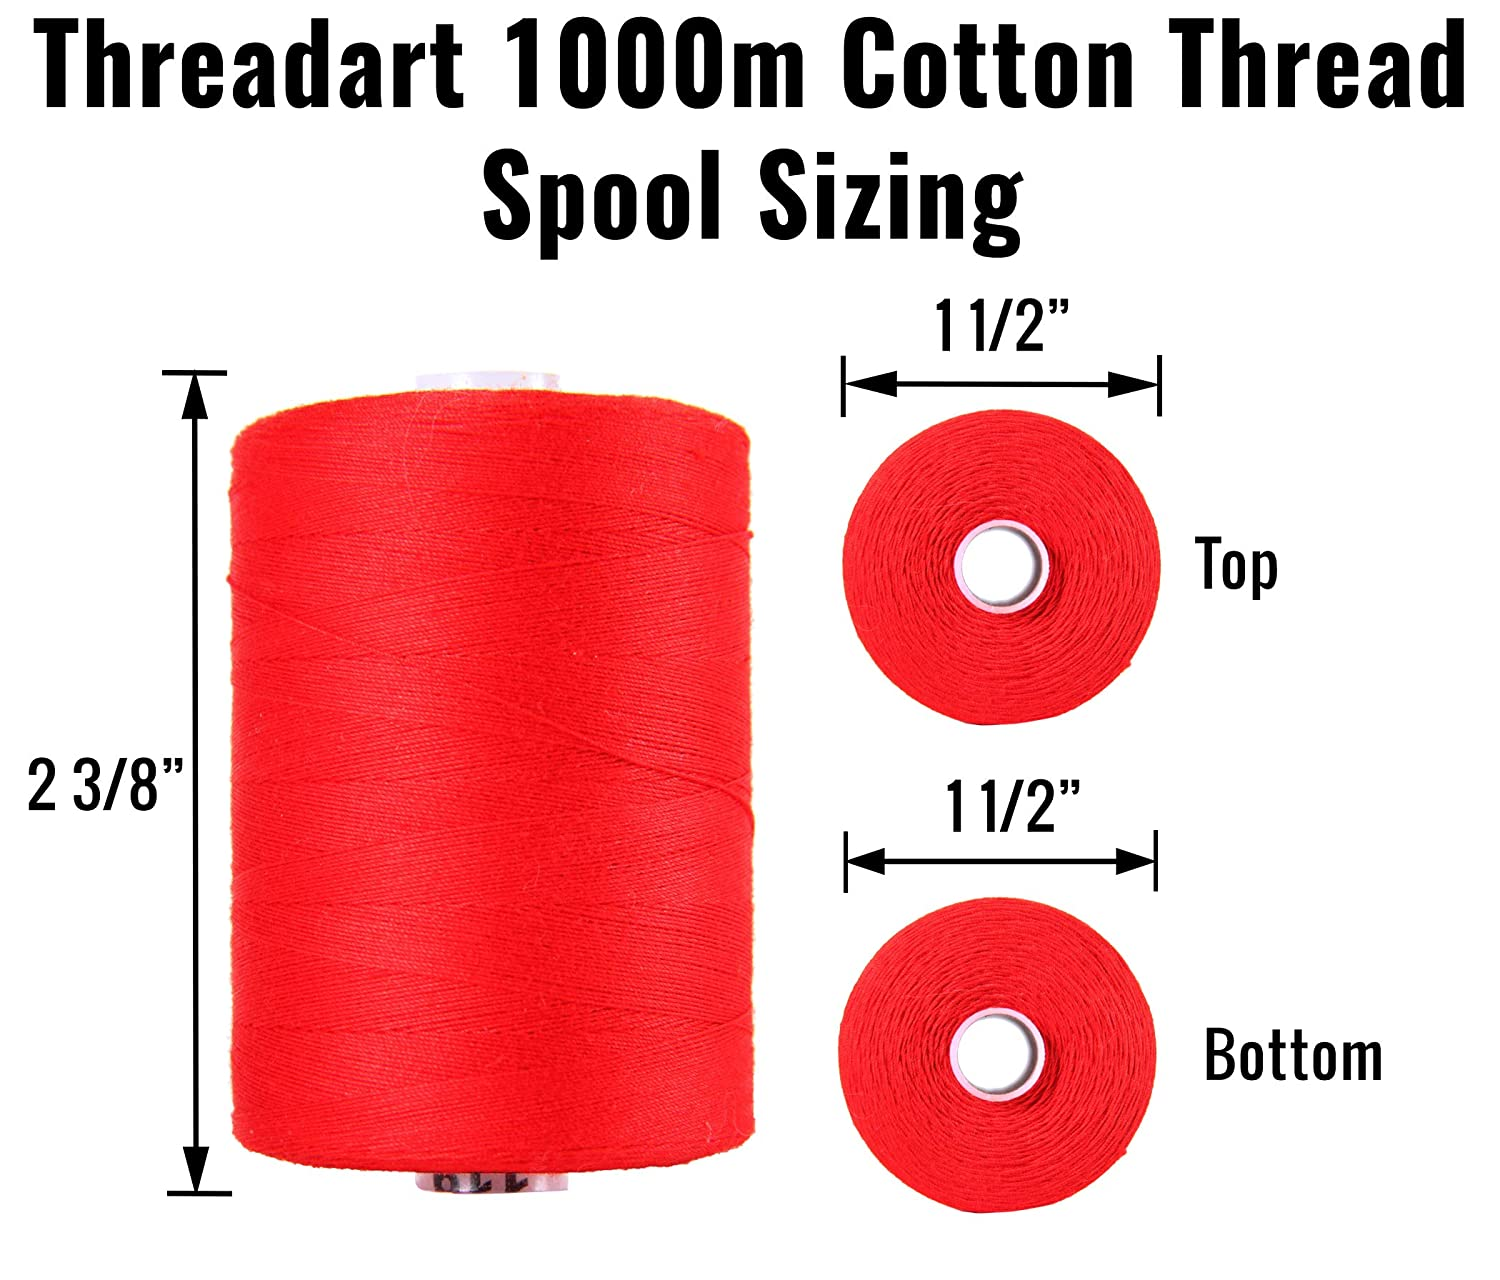 1000M Spools 50//3 Weight Sewing Color PUMPKIN and Serging 50 Colors Available For Quilting Threadart 100/% Cotton Thread